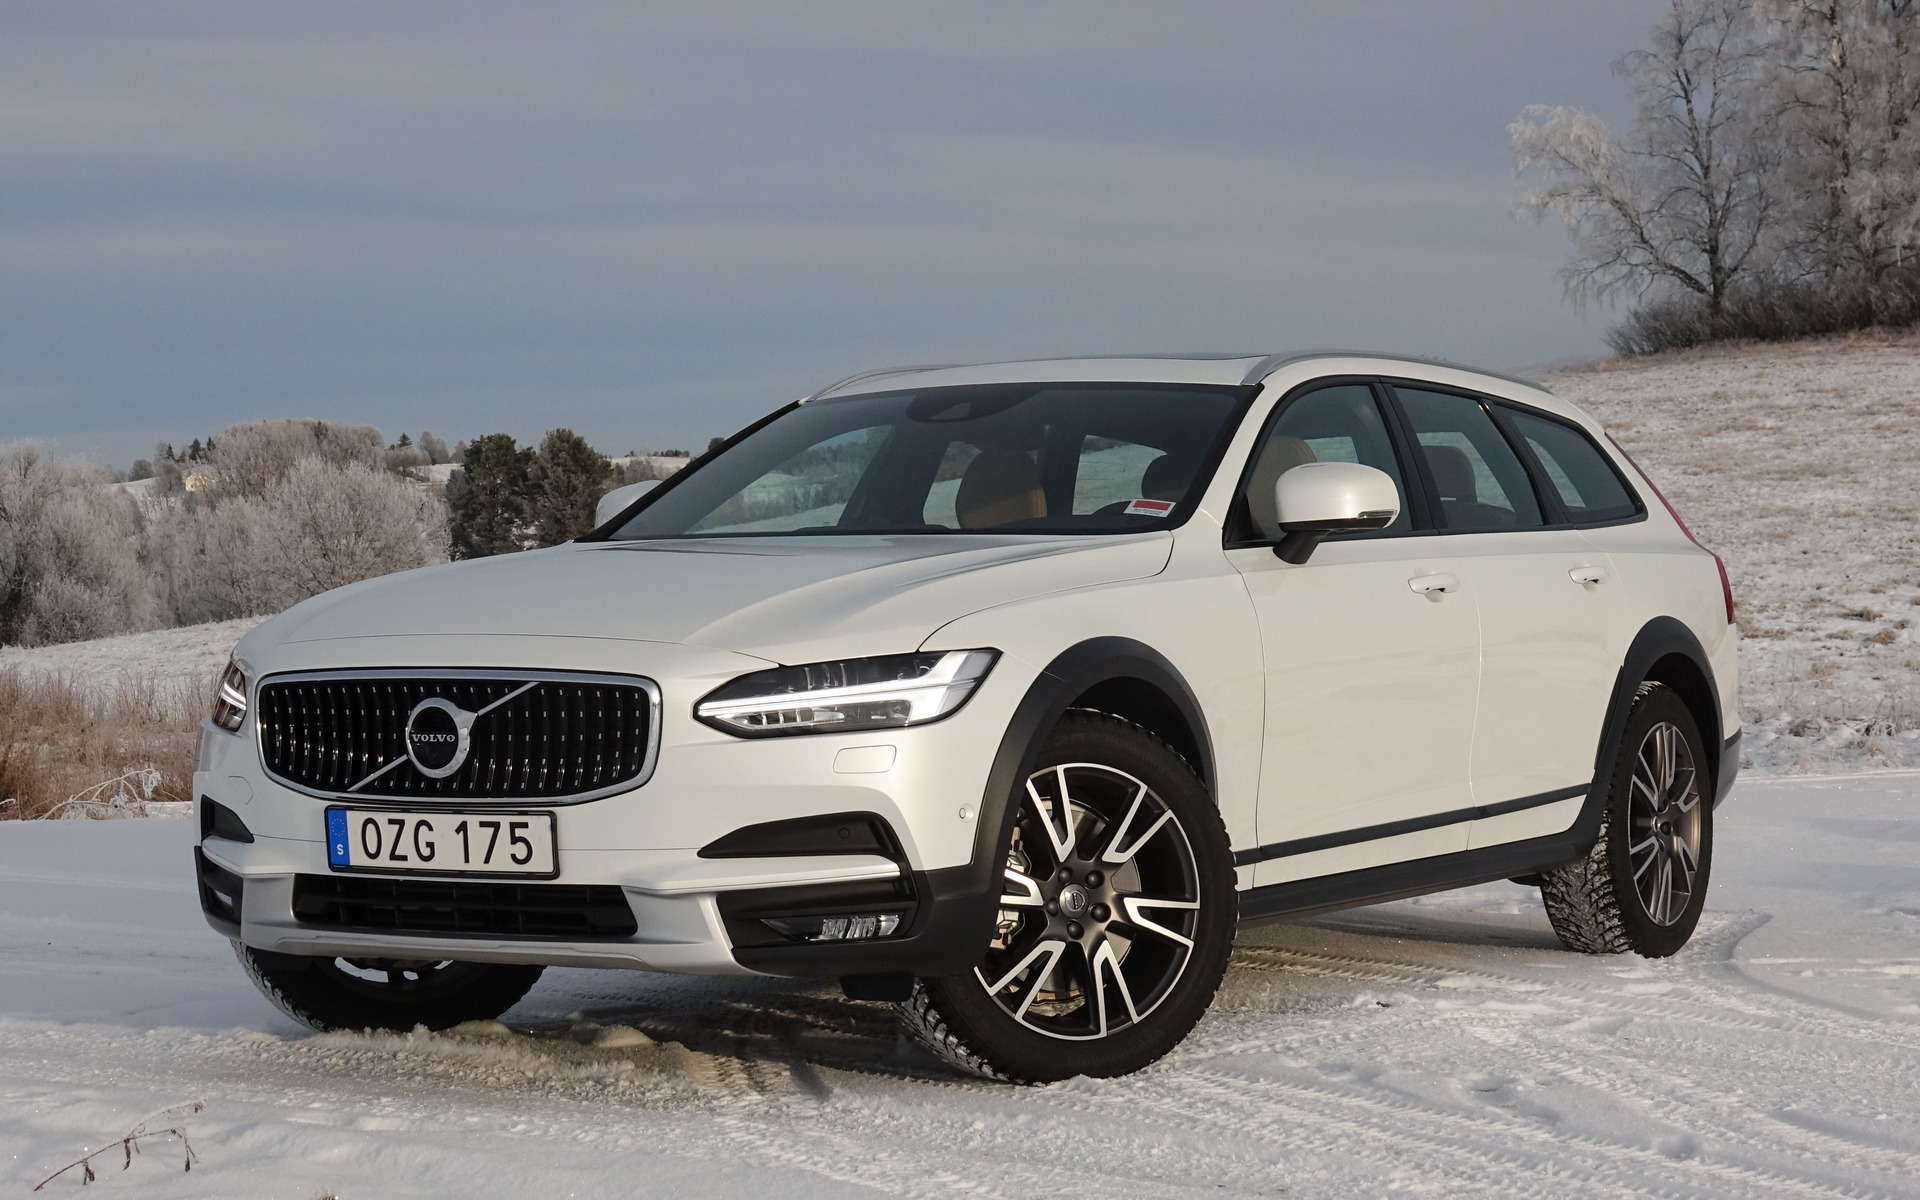 2017 volvo v90 cross country: king of the ice - the car guide